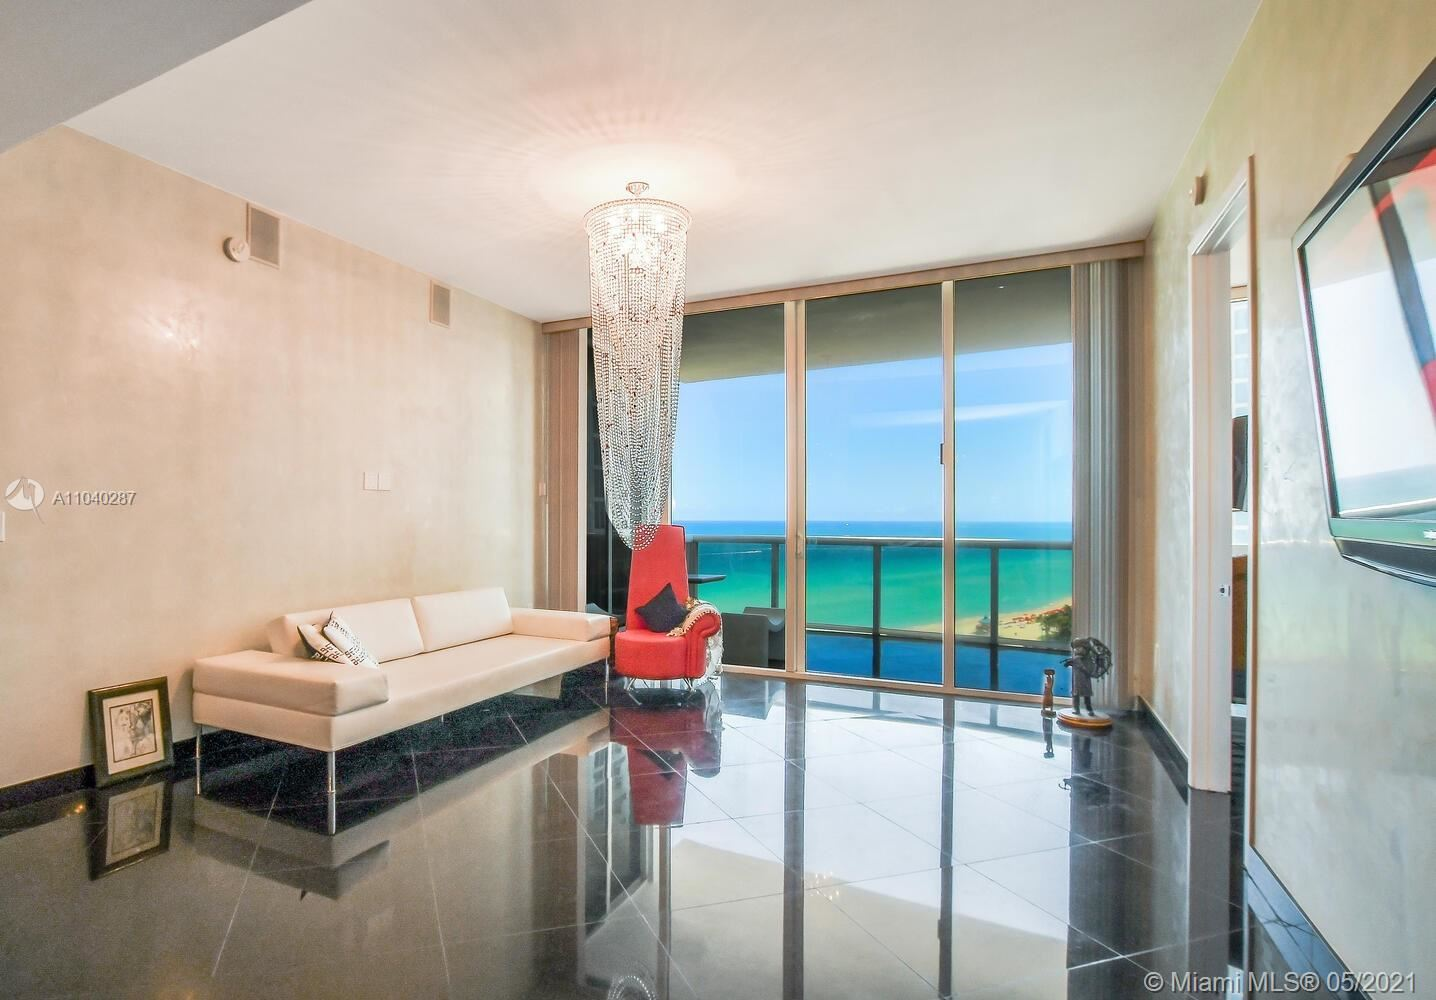 18101 Collins Ave #1502, Sunny Isles, FL 33160 - #: A11040287